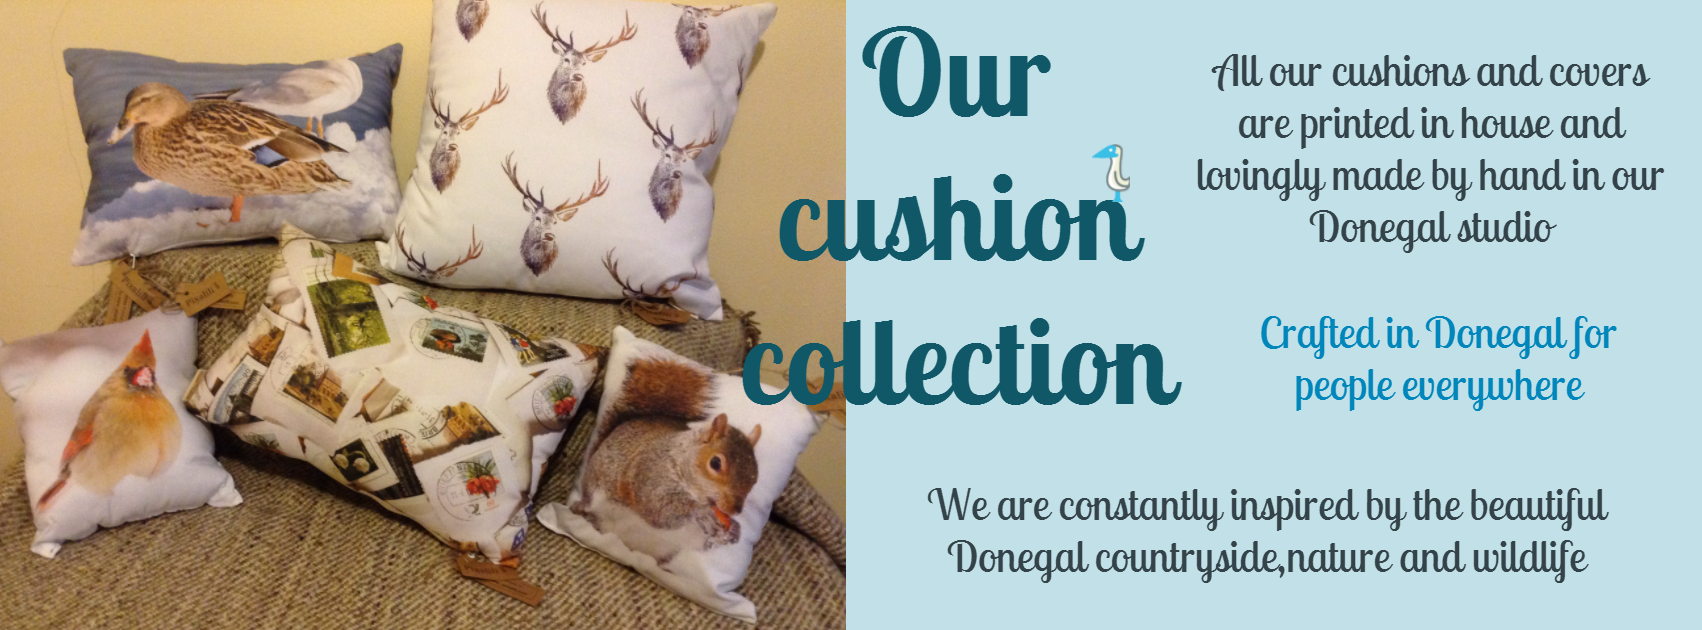 Cushions crafted in Donegal